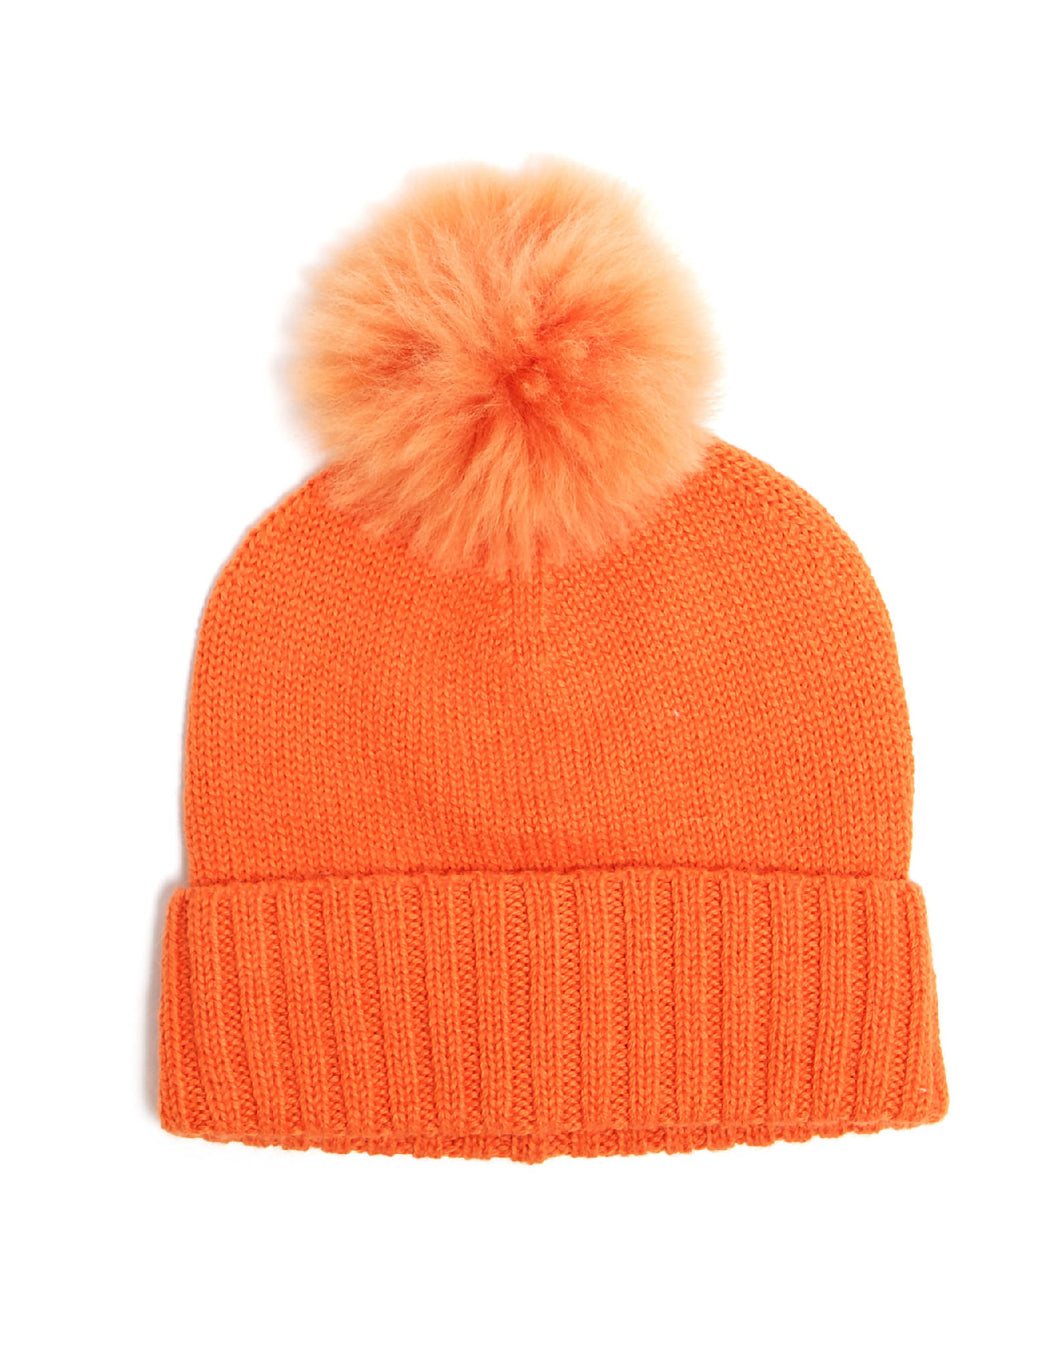 Bobble Beanies - 100% Alpaca (choose from 3 colours)